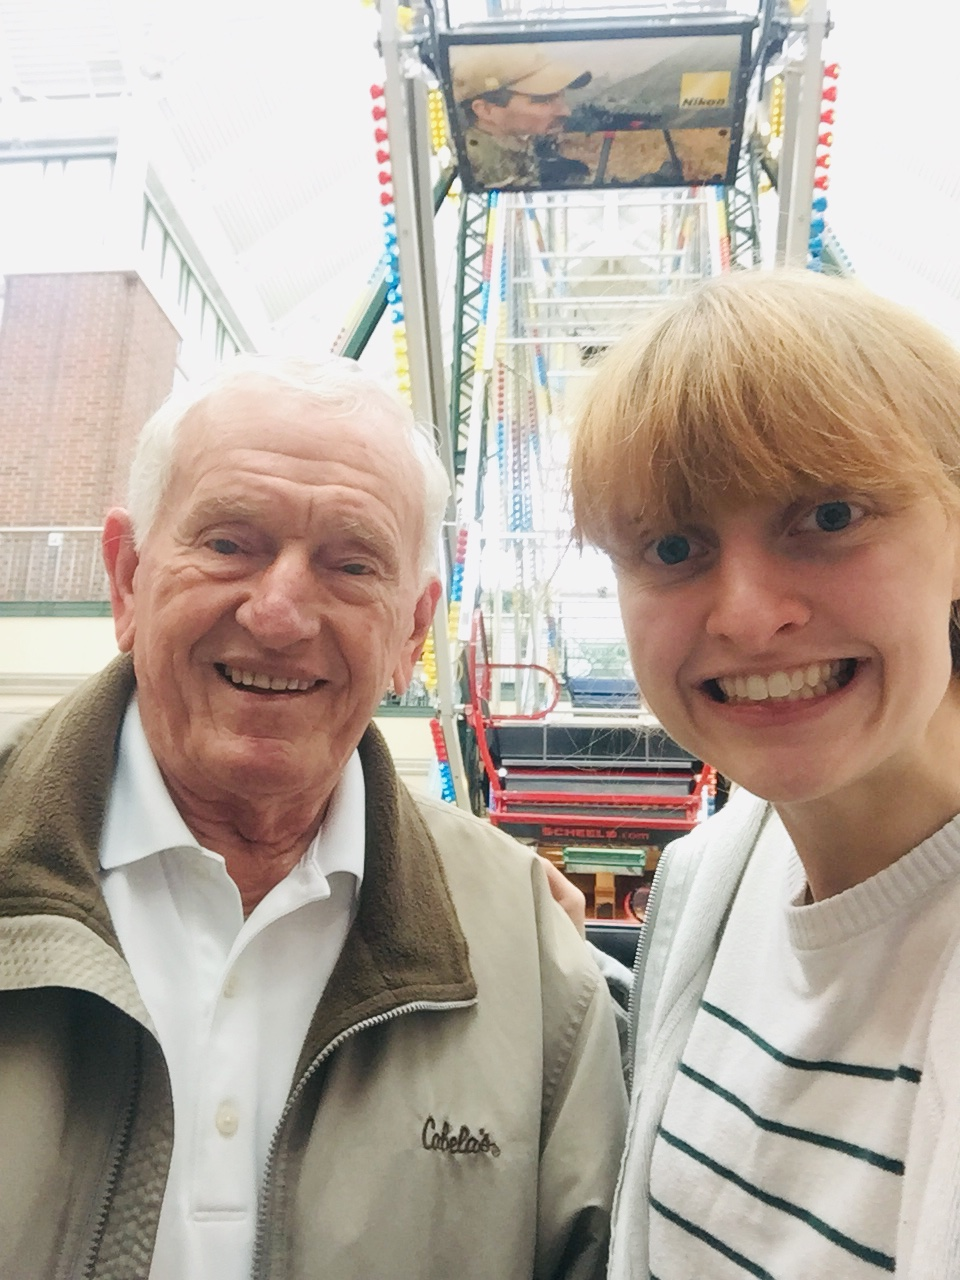 Image of me and my grandpa beside a ferris wheel